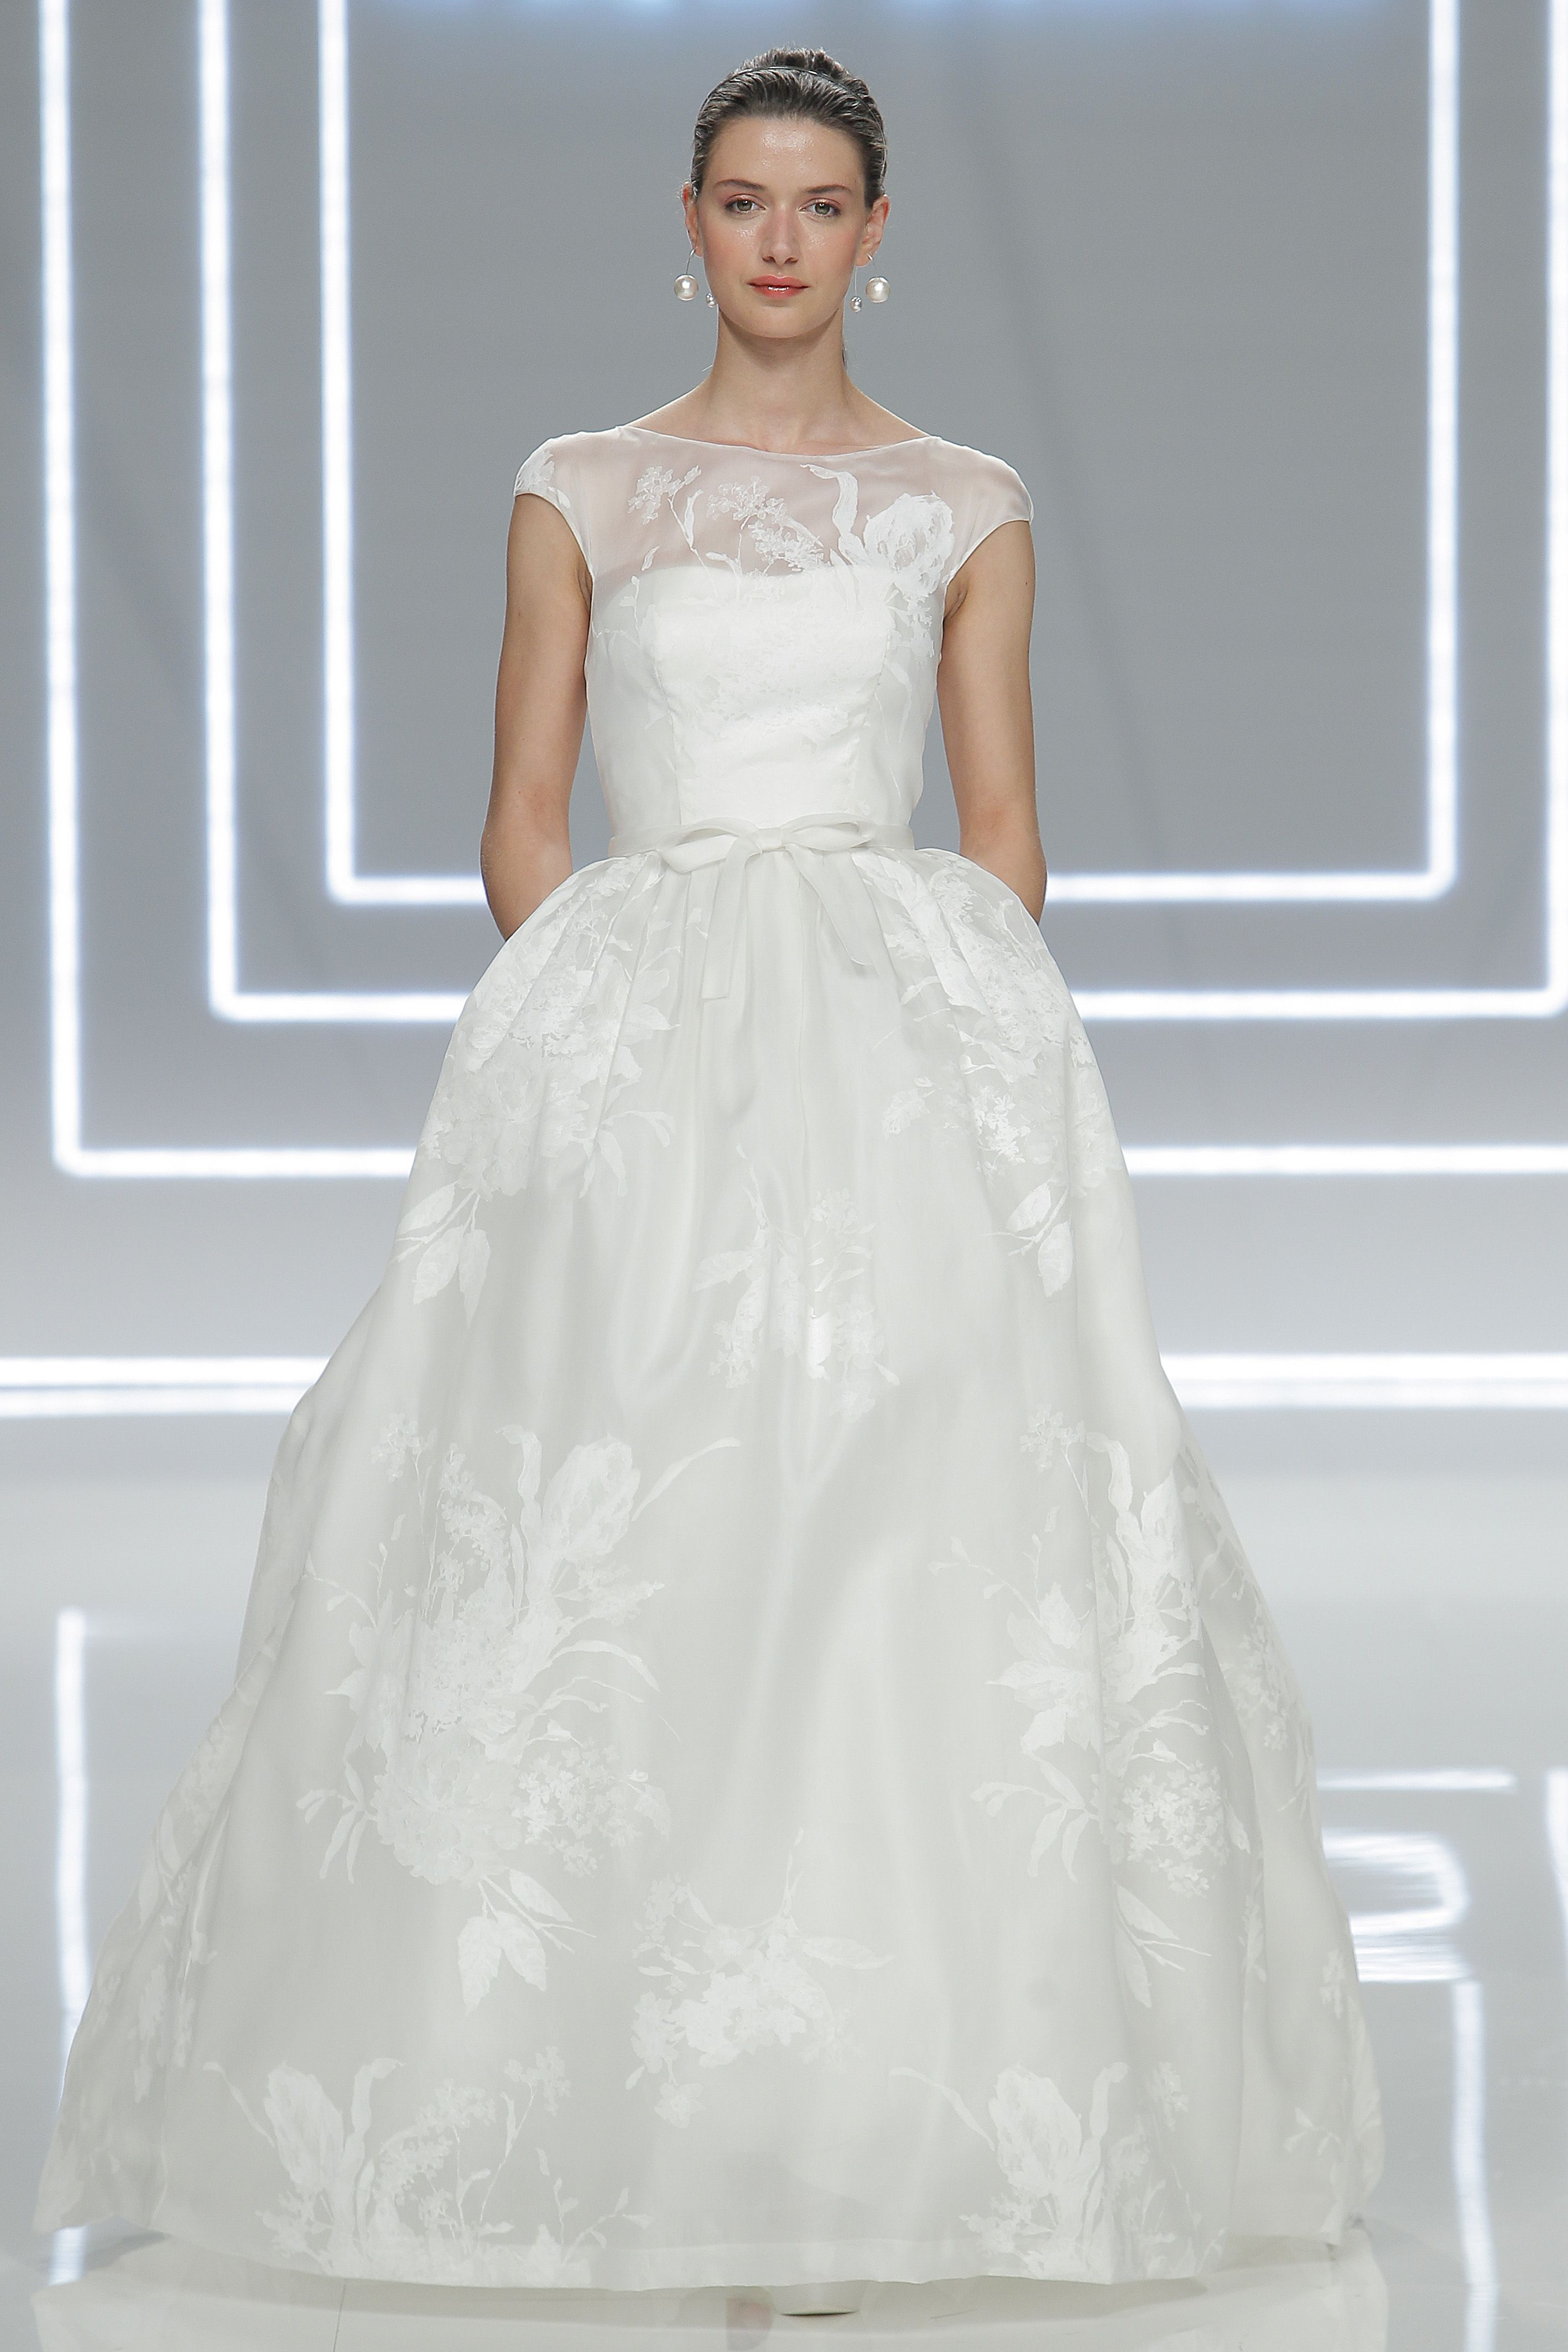 The prettiest wedding dresses from barcelona bridal fashion week the prettiest wedding dresses from barcelona bridal fashion week ombrellifo Choice Image